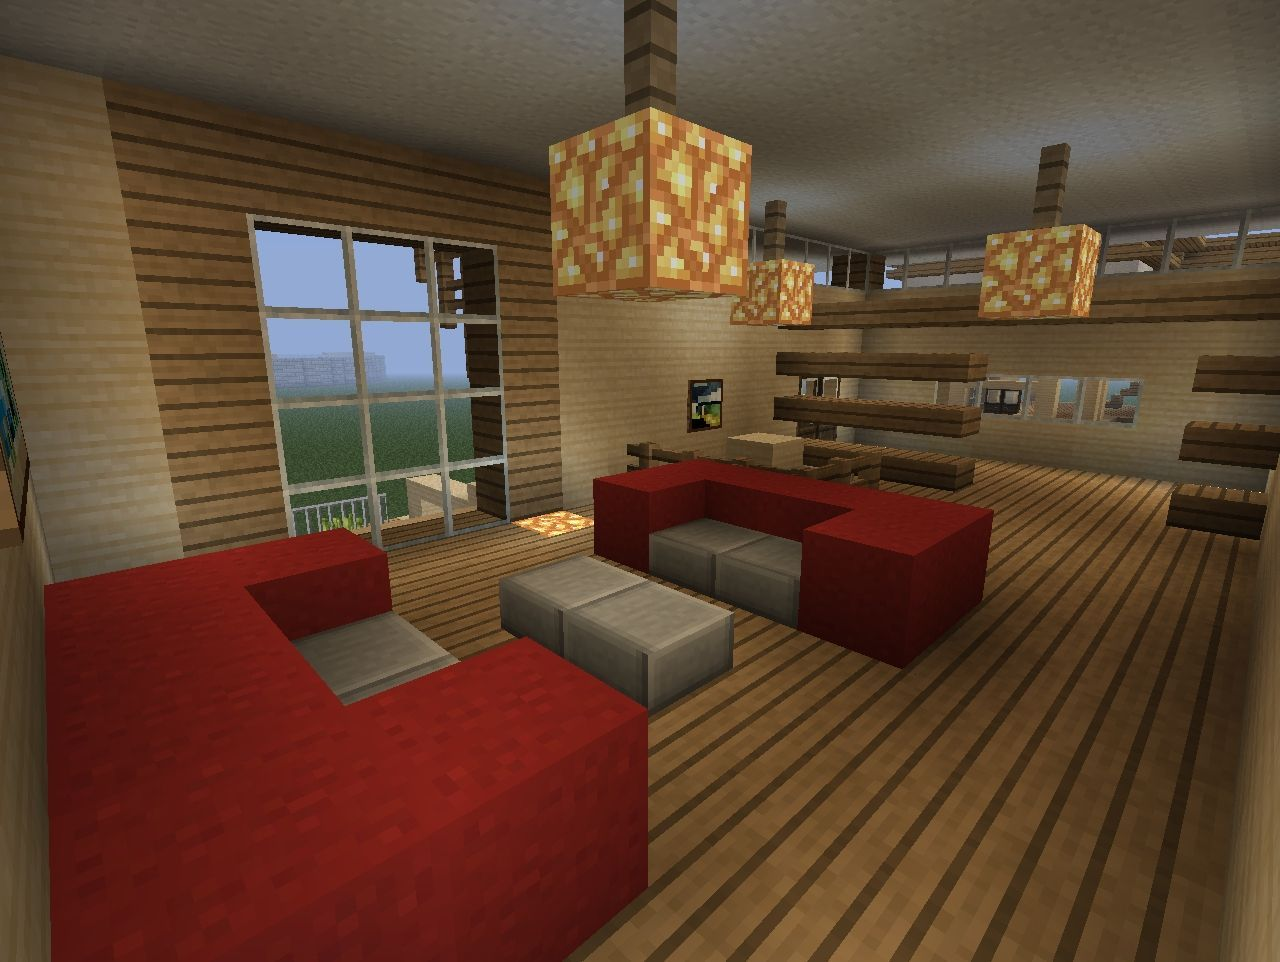 263321107aea939a66913604a41ae5e2 - 17+ Small House Interior Design Minecraft  Pictures